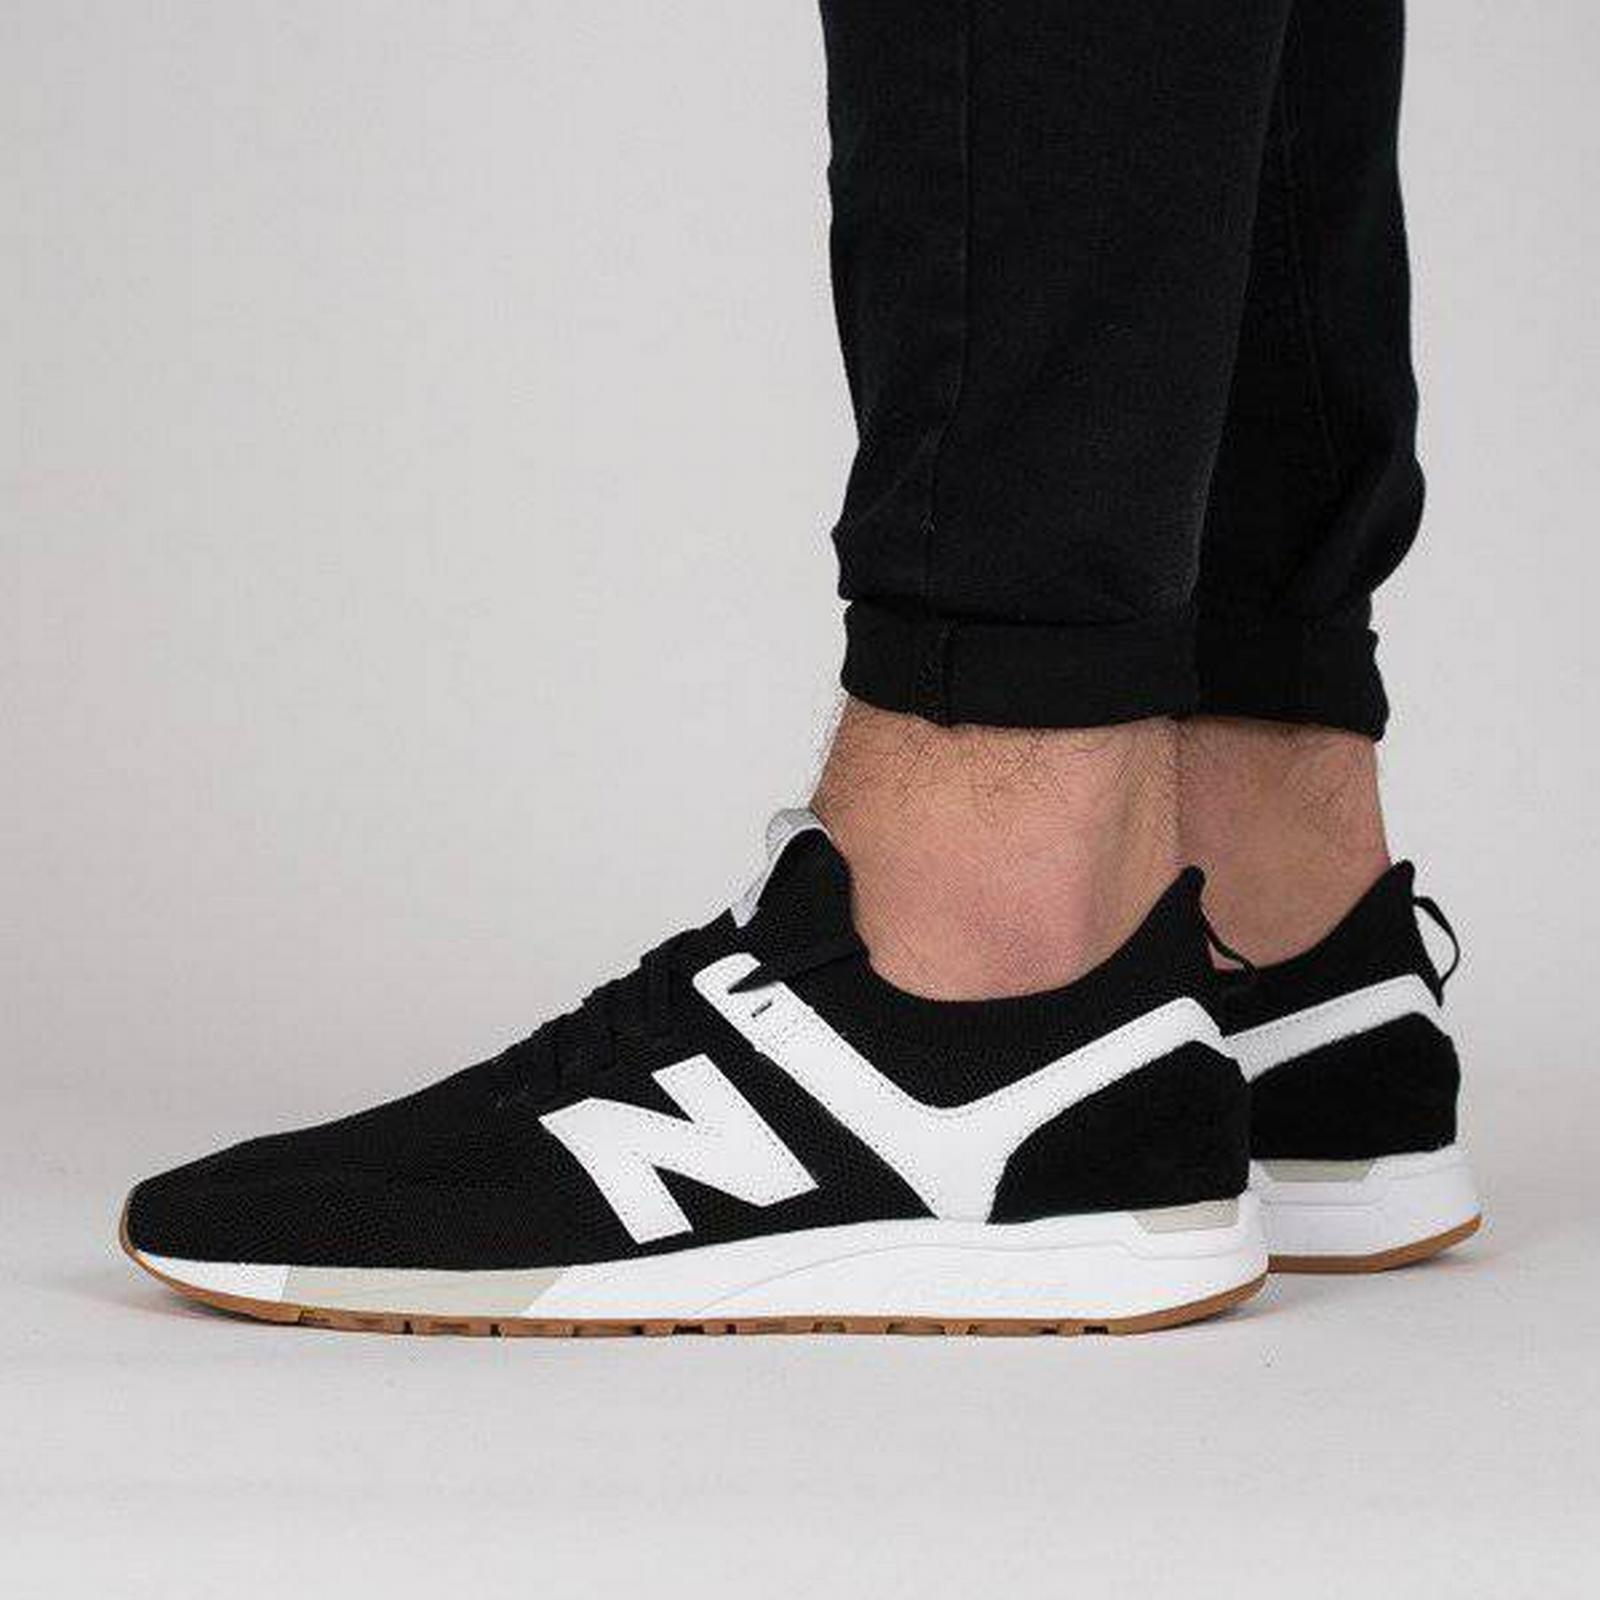 New Balance Men's shoes Size sneakers New Balance MRL247DY BLACK Size shoes 44 8bd9bd